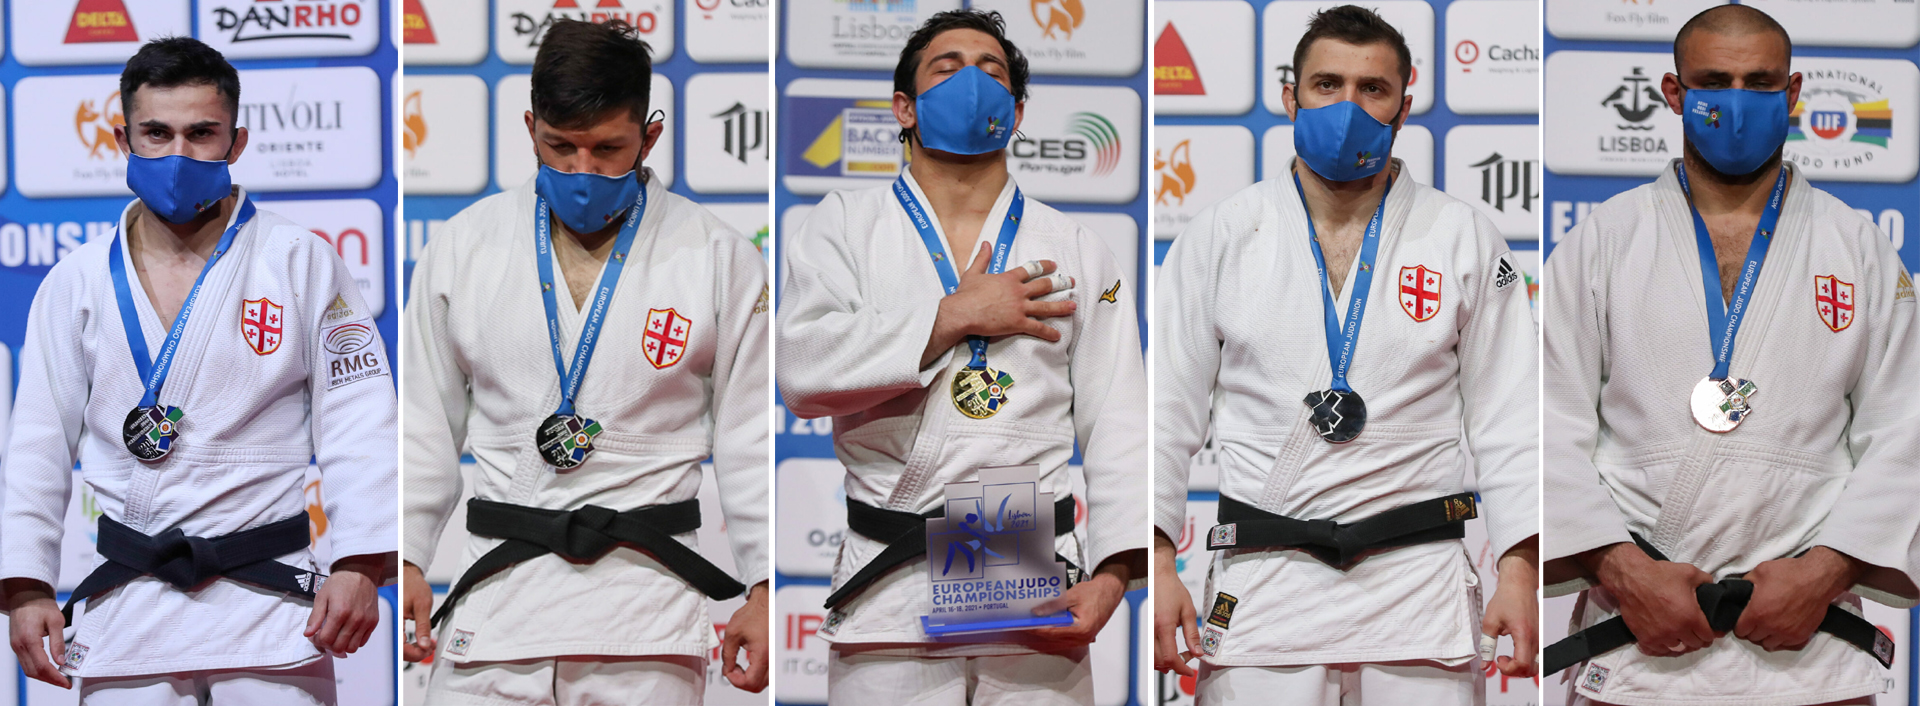 5 medals in the European Championships